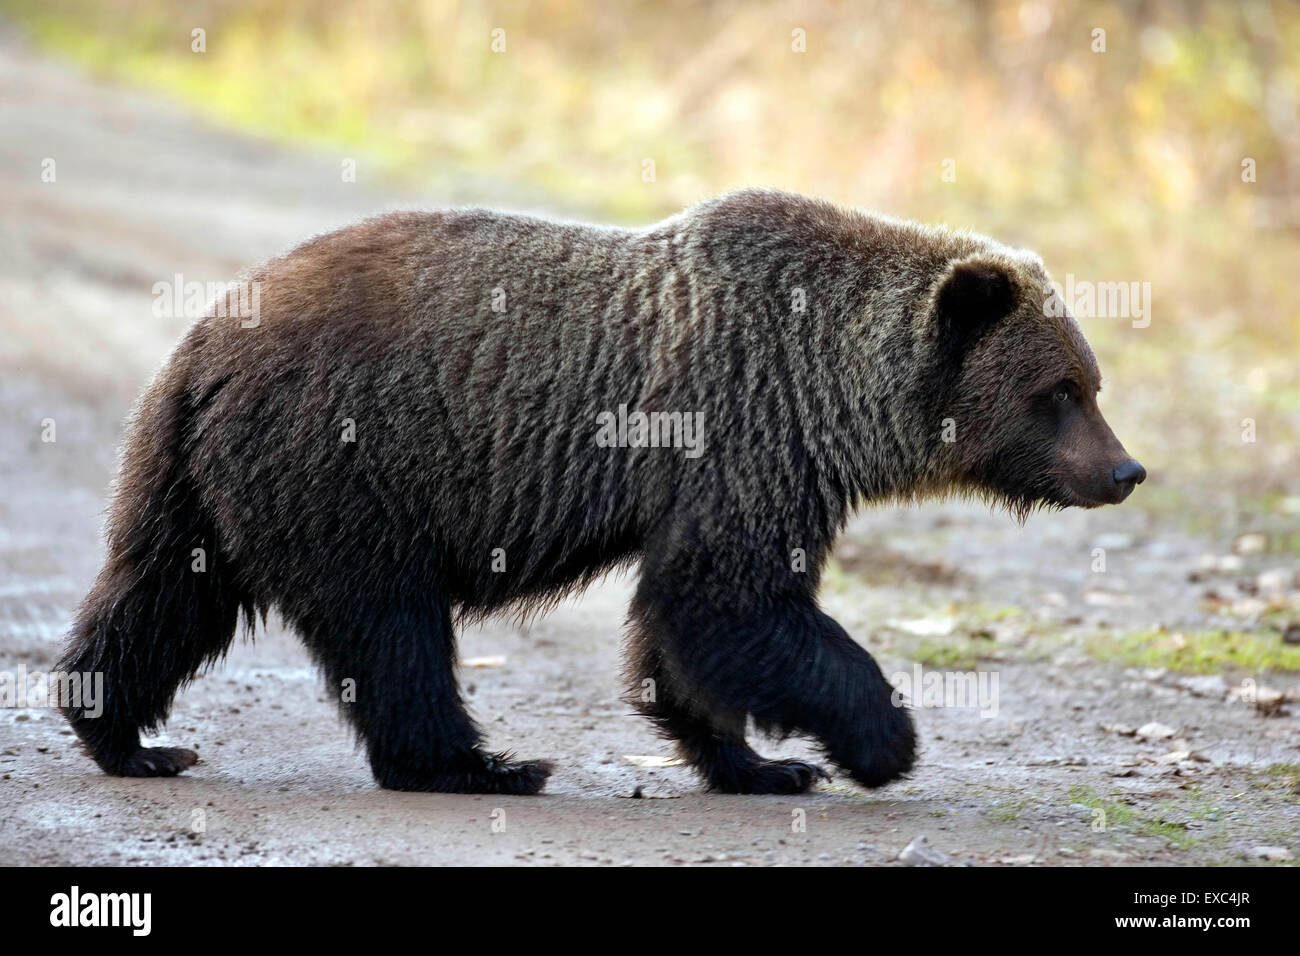 Grizzly Bear, young adult, three years old, crossing forest road Stock Photo